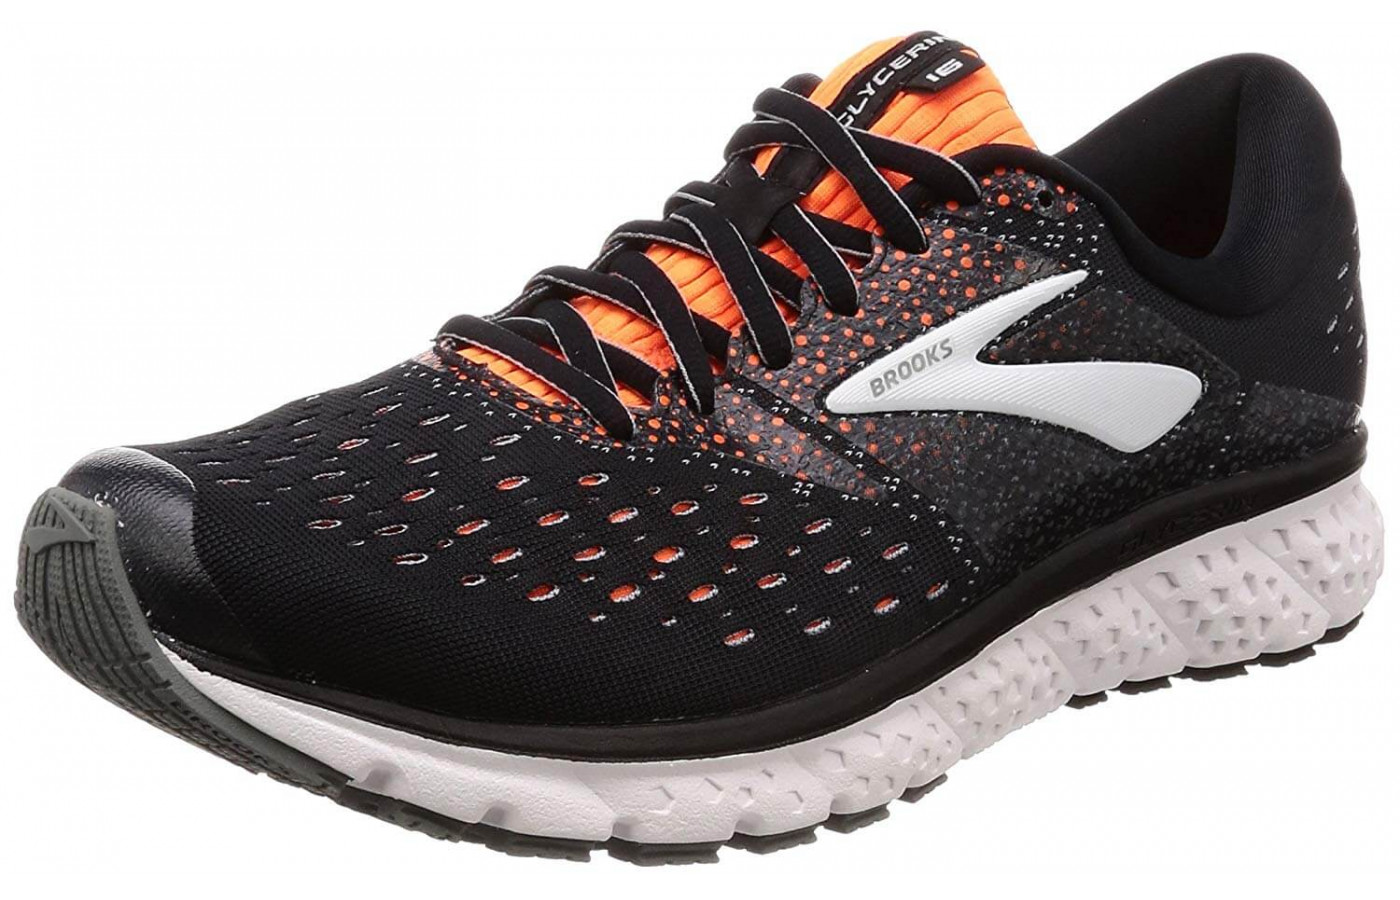 ee198166f5b The Brooks Glycerin 16 features an IDEAL pressure zone midsole design ...